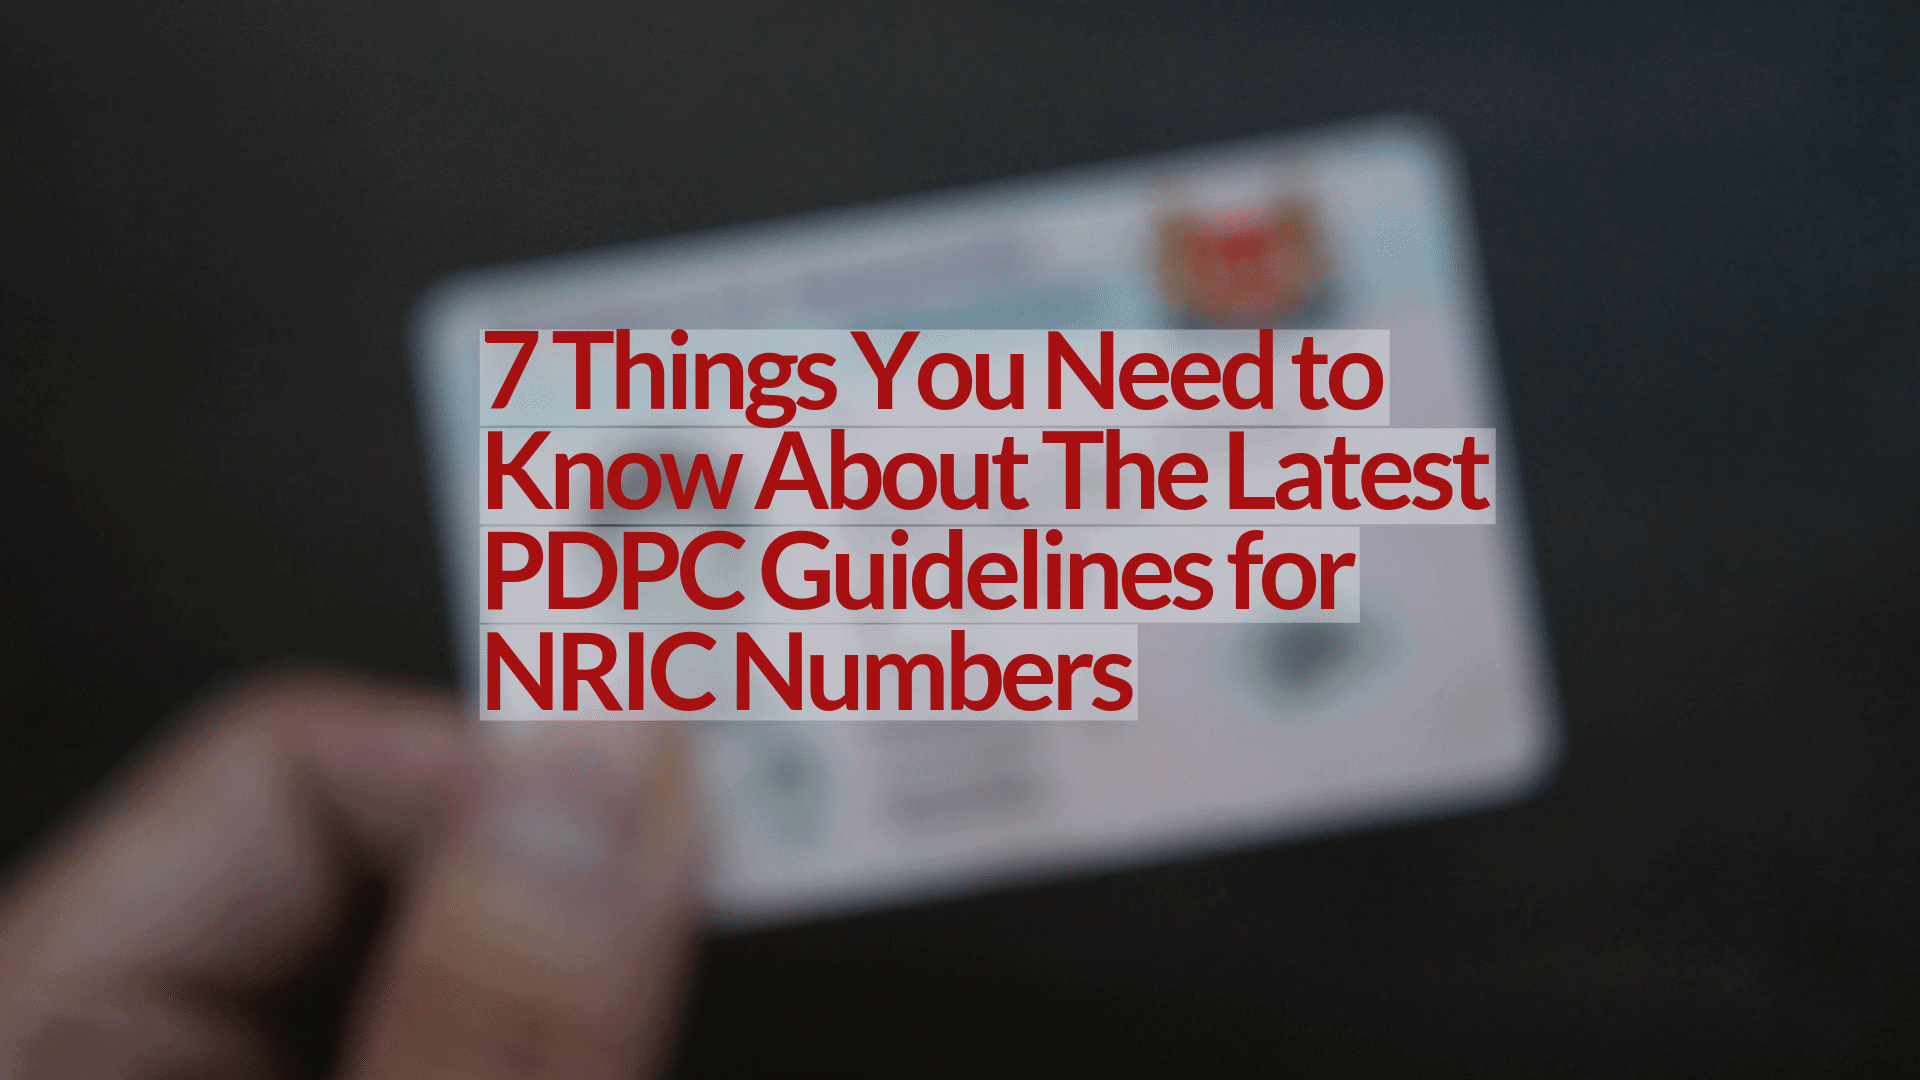 7 Things You Need to Know About The Latest PDPC Guidelines for NRIC Numbers